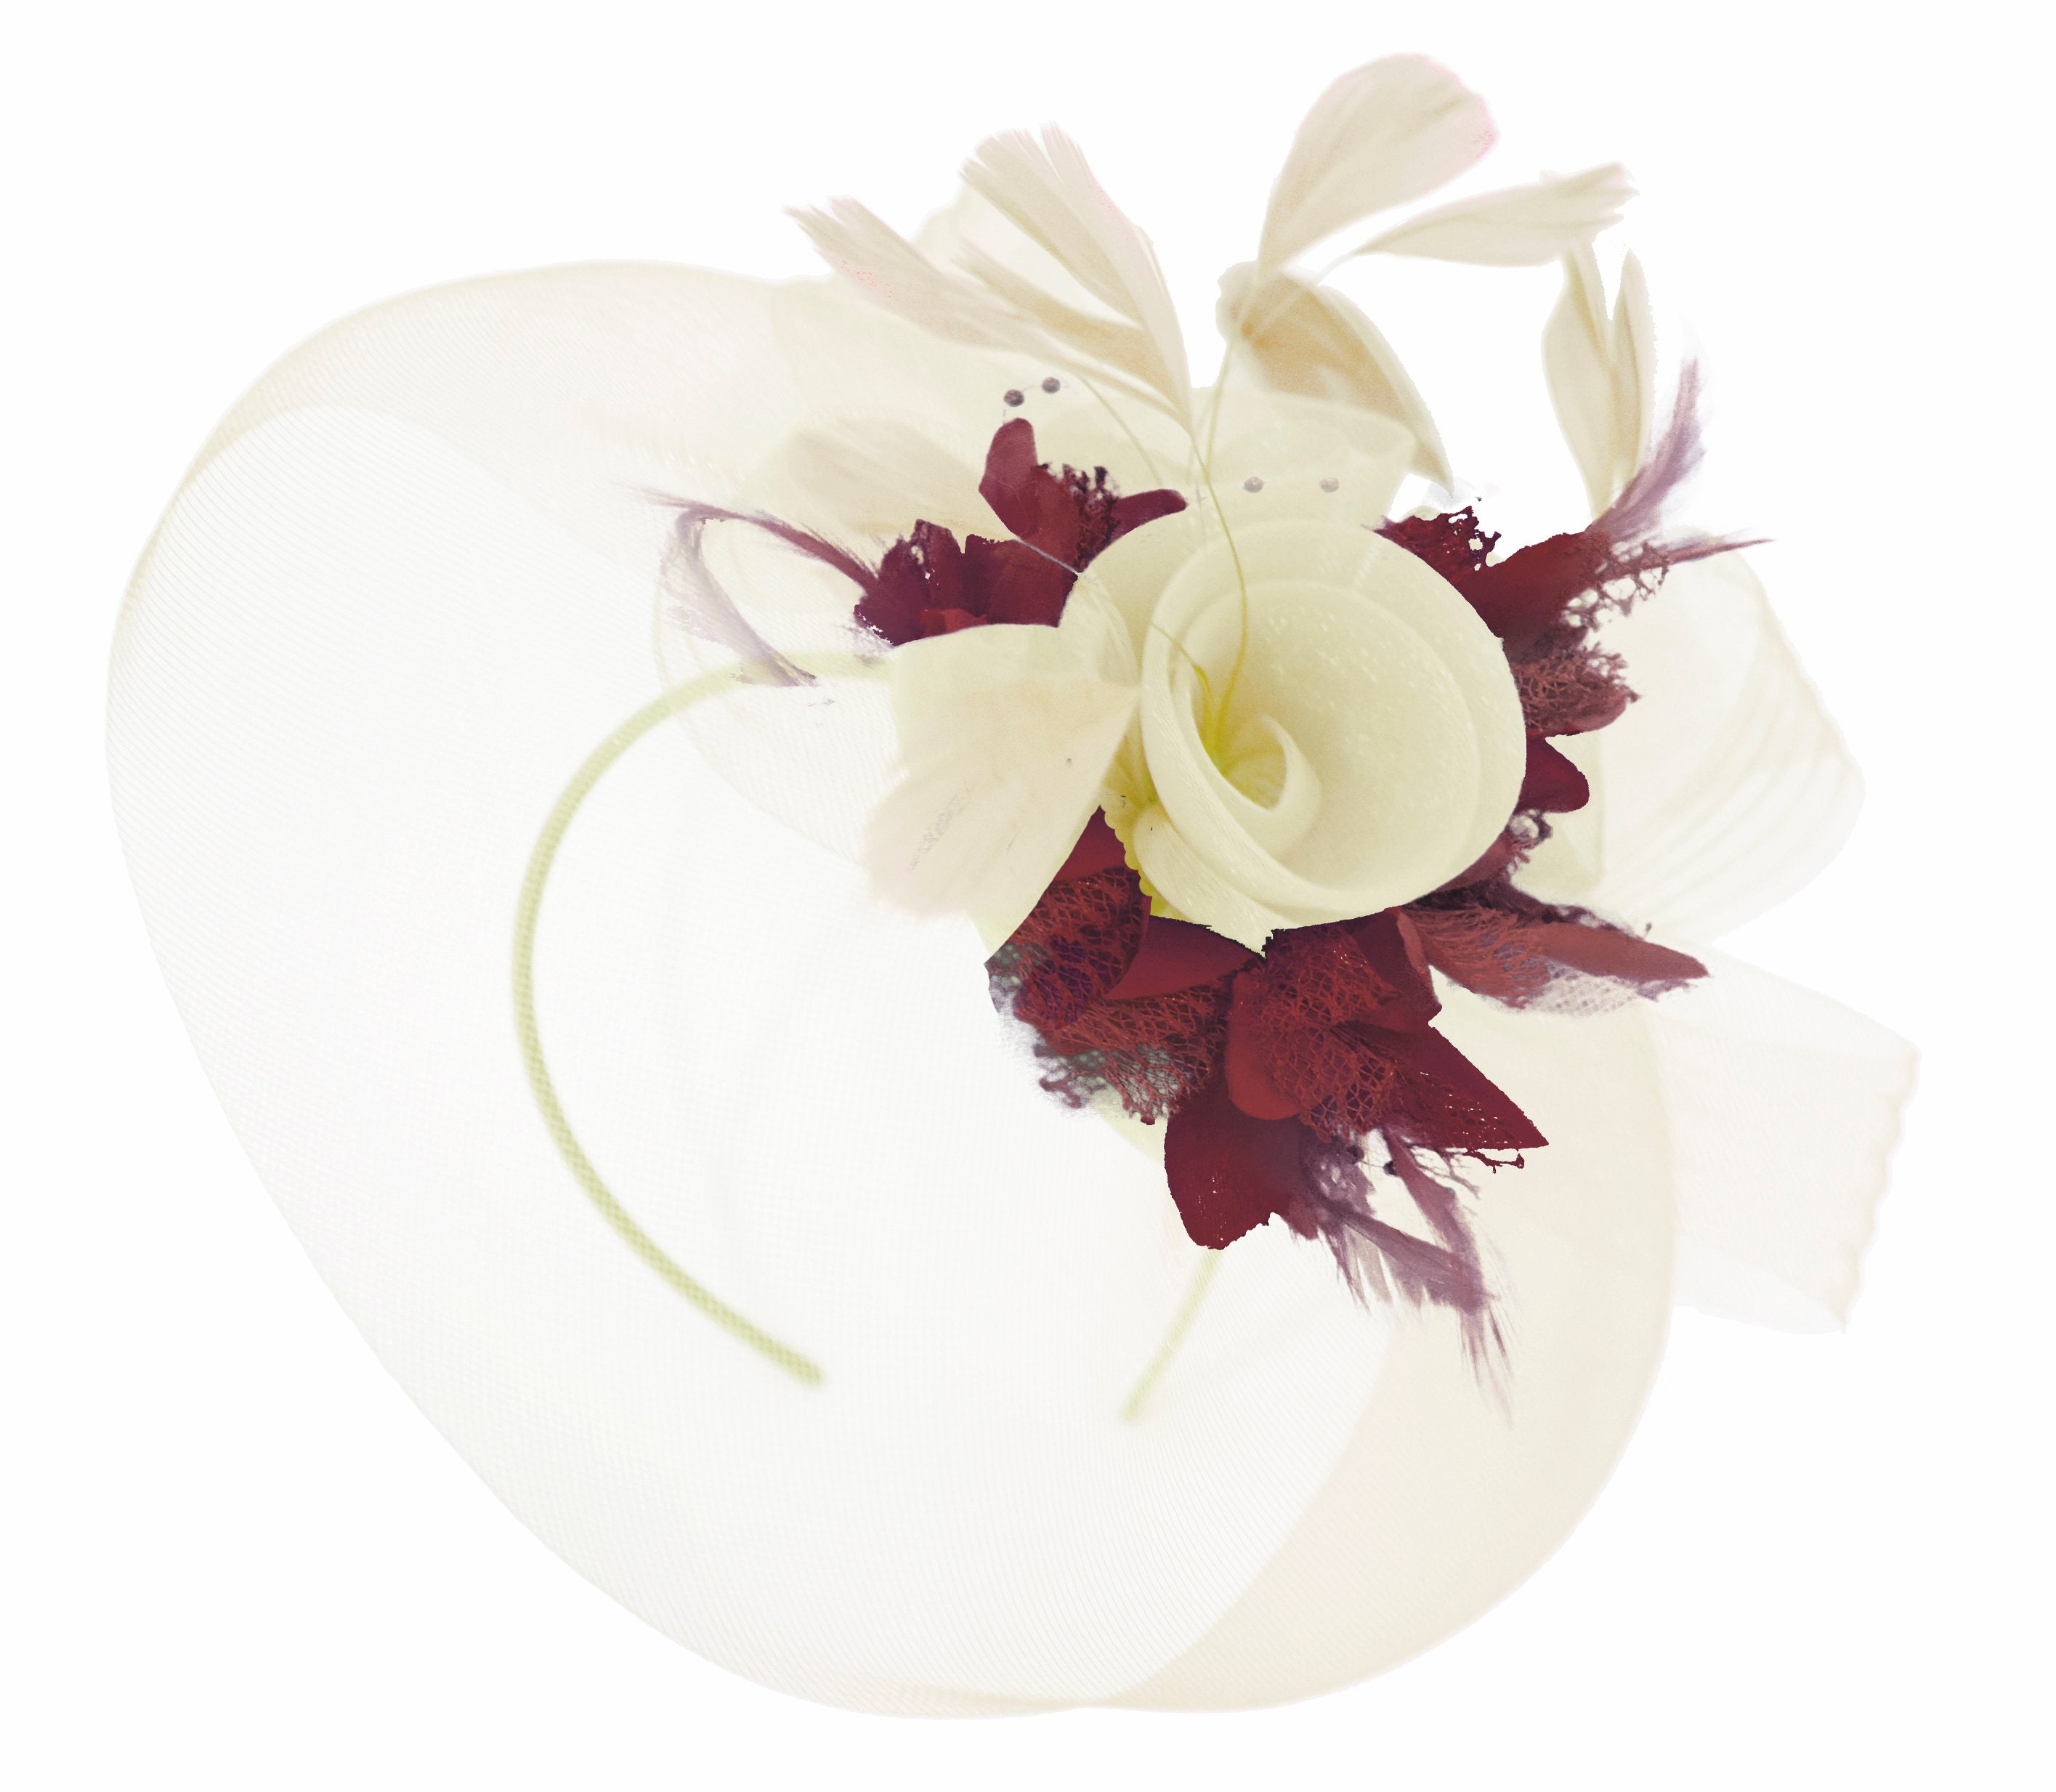 Caprilite Cream and Burgundy Fascinator on Headband Veil UK Wedding Ascot Races Hatinator Women